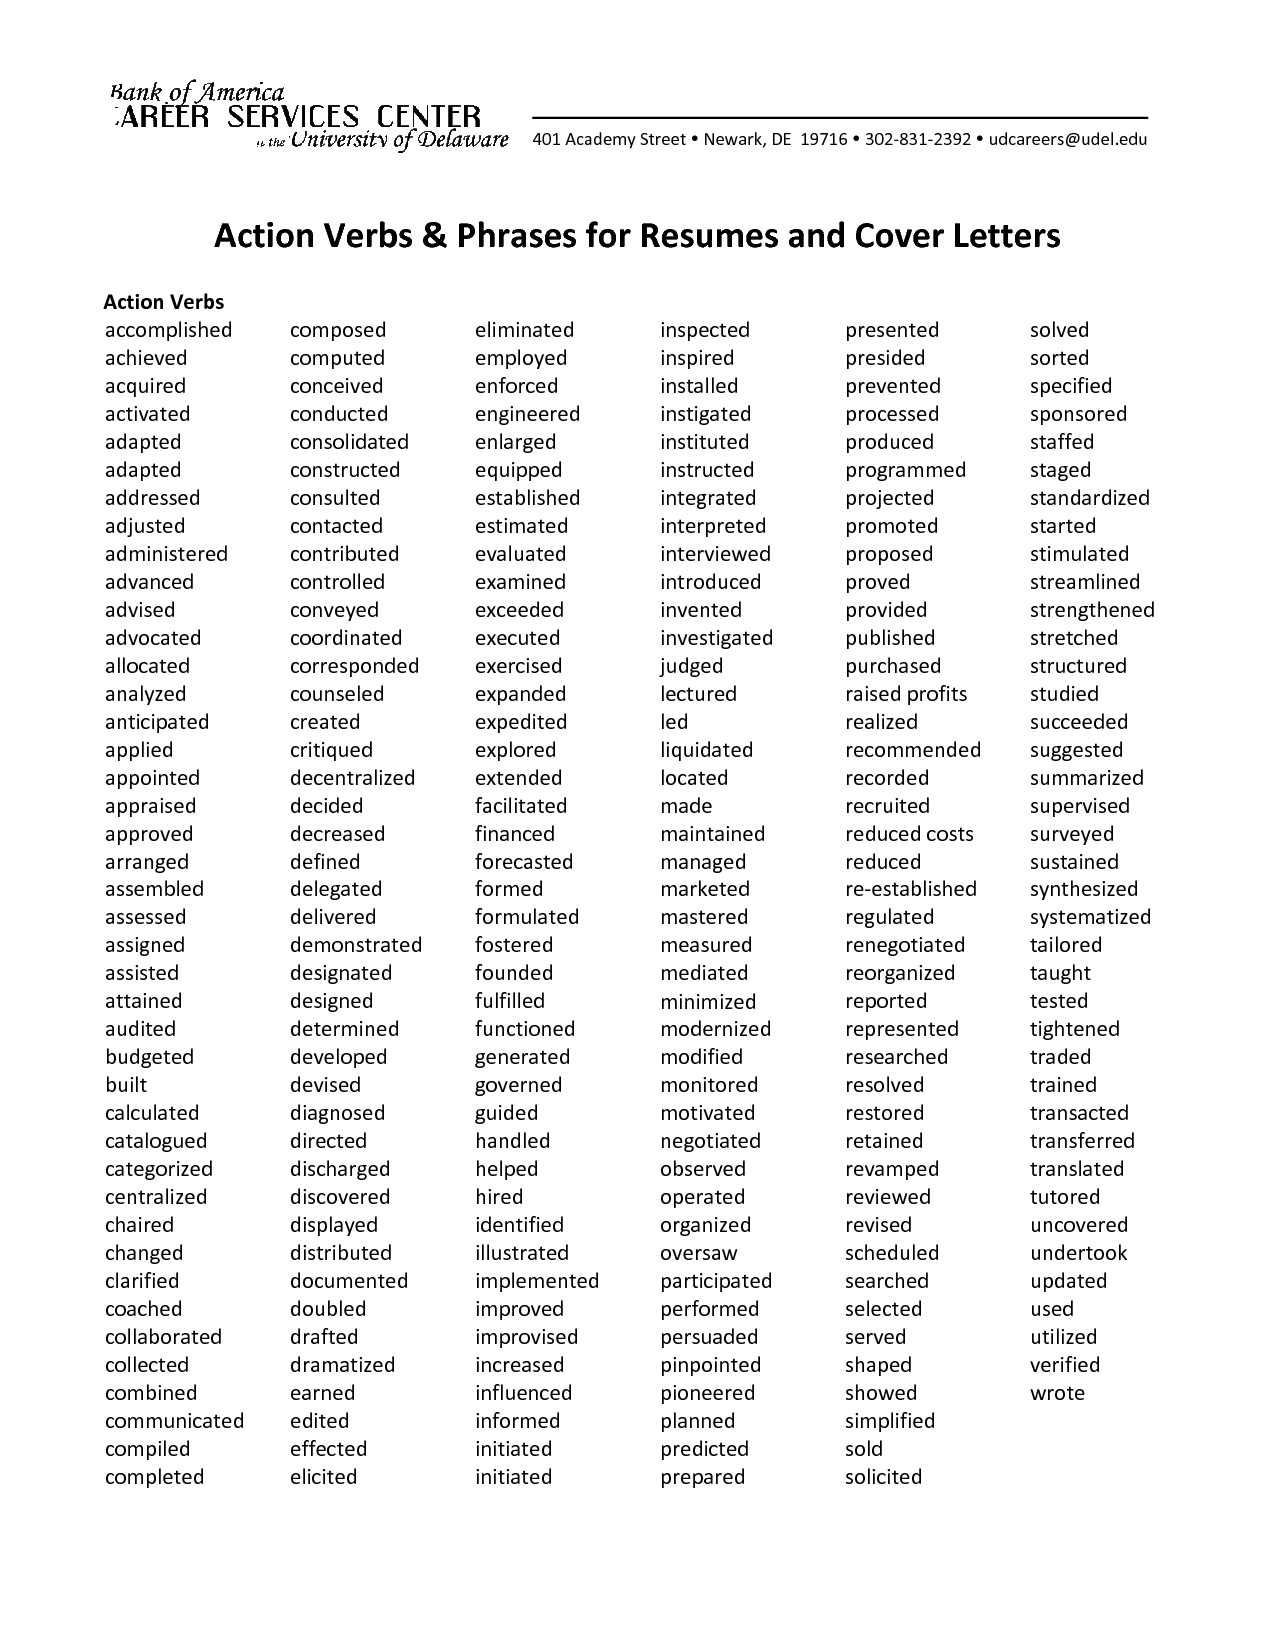 Action Verbs Phrases for Resumes and Cover Letters  education lesson plans  Resume adjectives